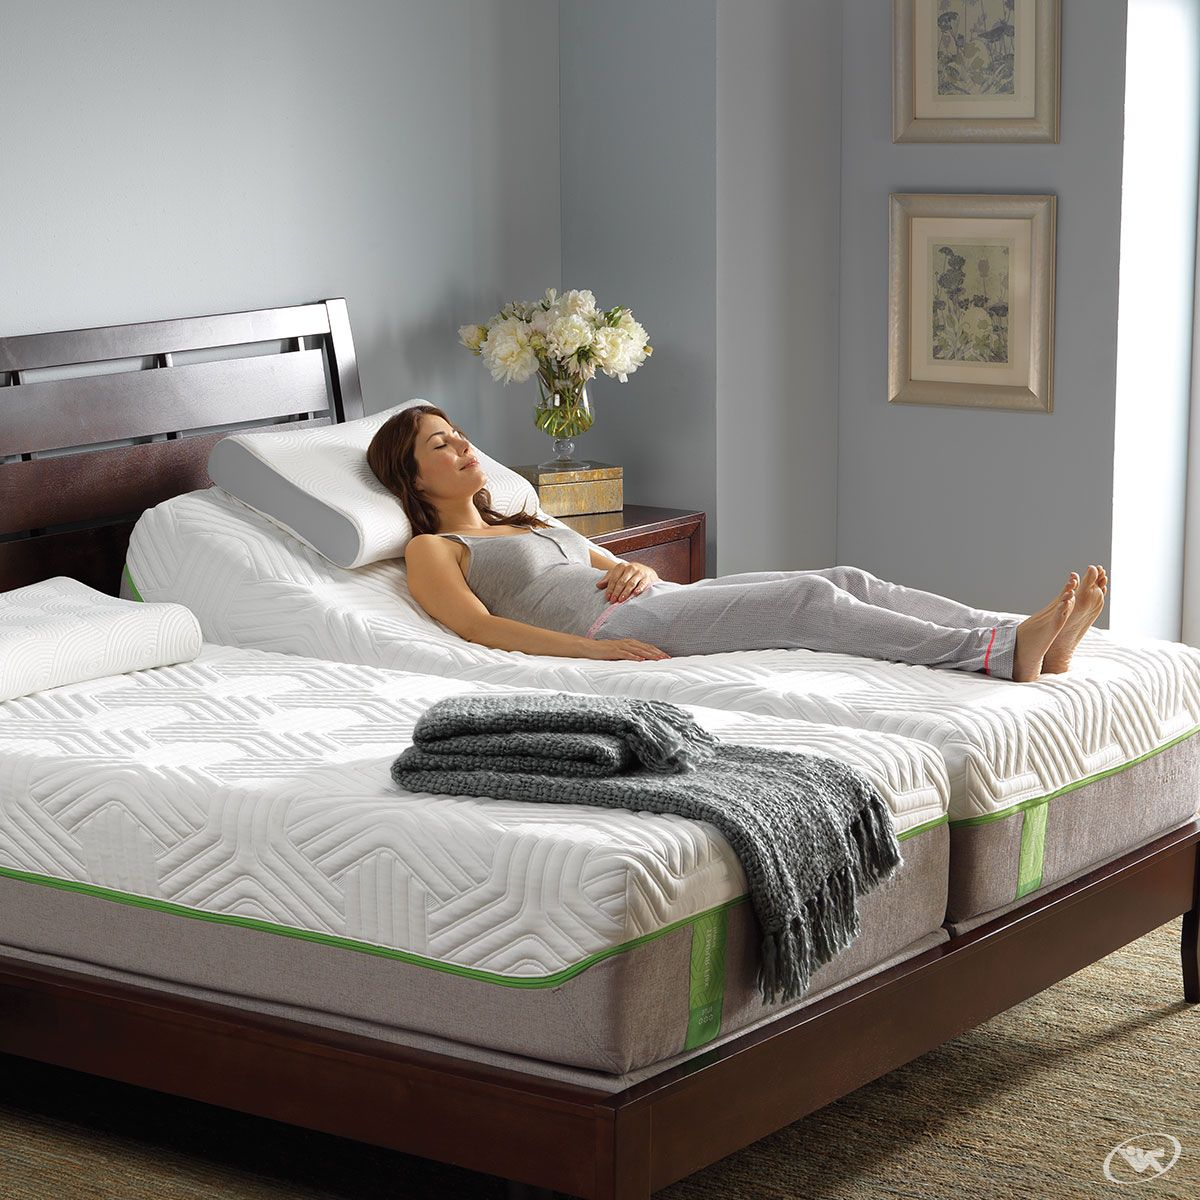 Only One More Week To Save Up To 600 On All Tempur Pedic Mattress Sets 60 Month Financing Is Also Available Stop By Your Local Relax Th Tempurpedic Mattress